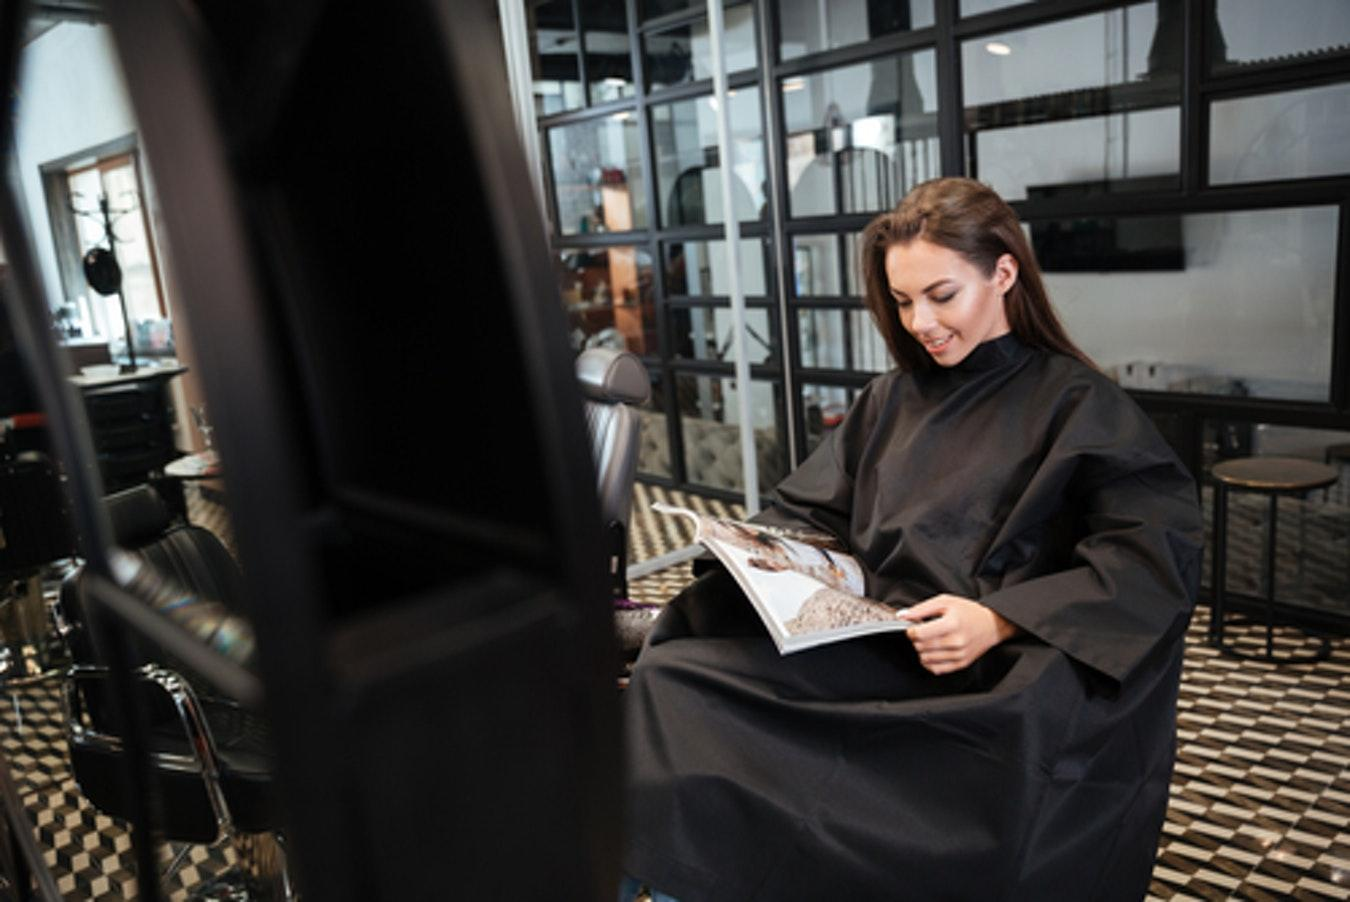 Salon & Spa Are Soon to be Open, Check These 6 Safe Tips Before Visiting Them!